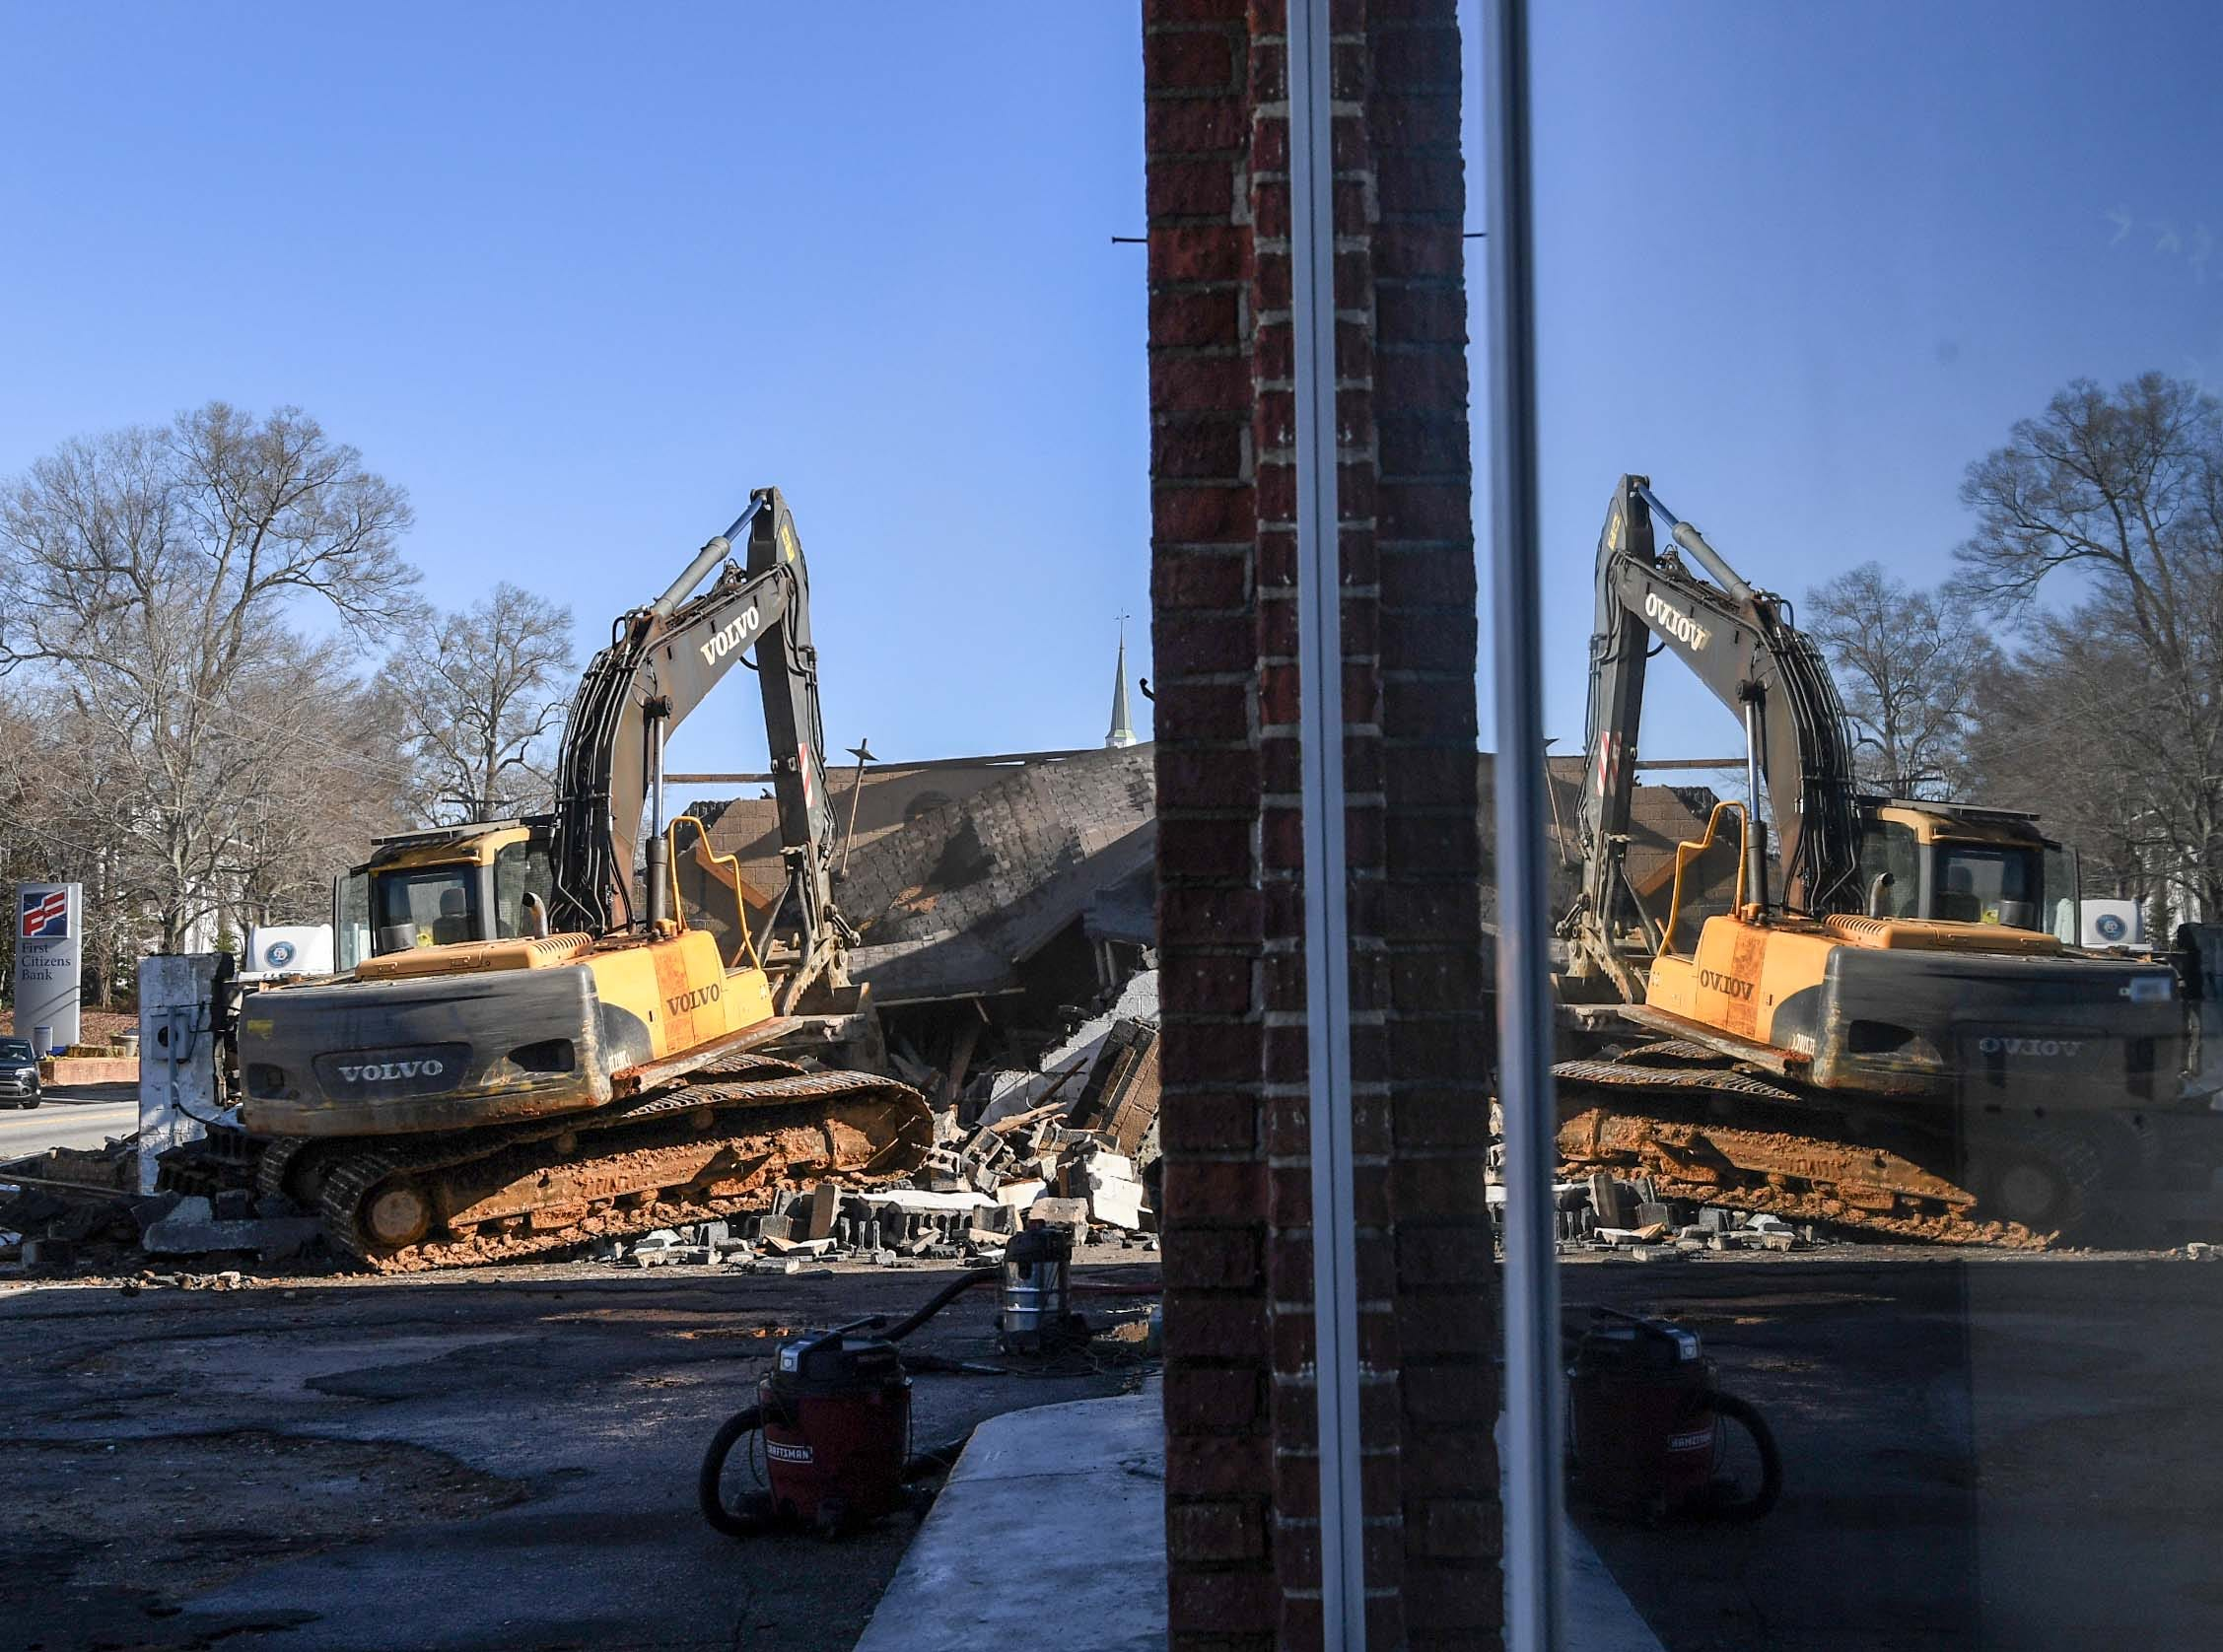 Hack Hammond of Pelzer, also in a reflection in a window at Mustang's Auto Detail, demolishes the Williamston Theater in Williamston on Tuesday.